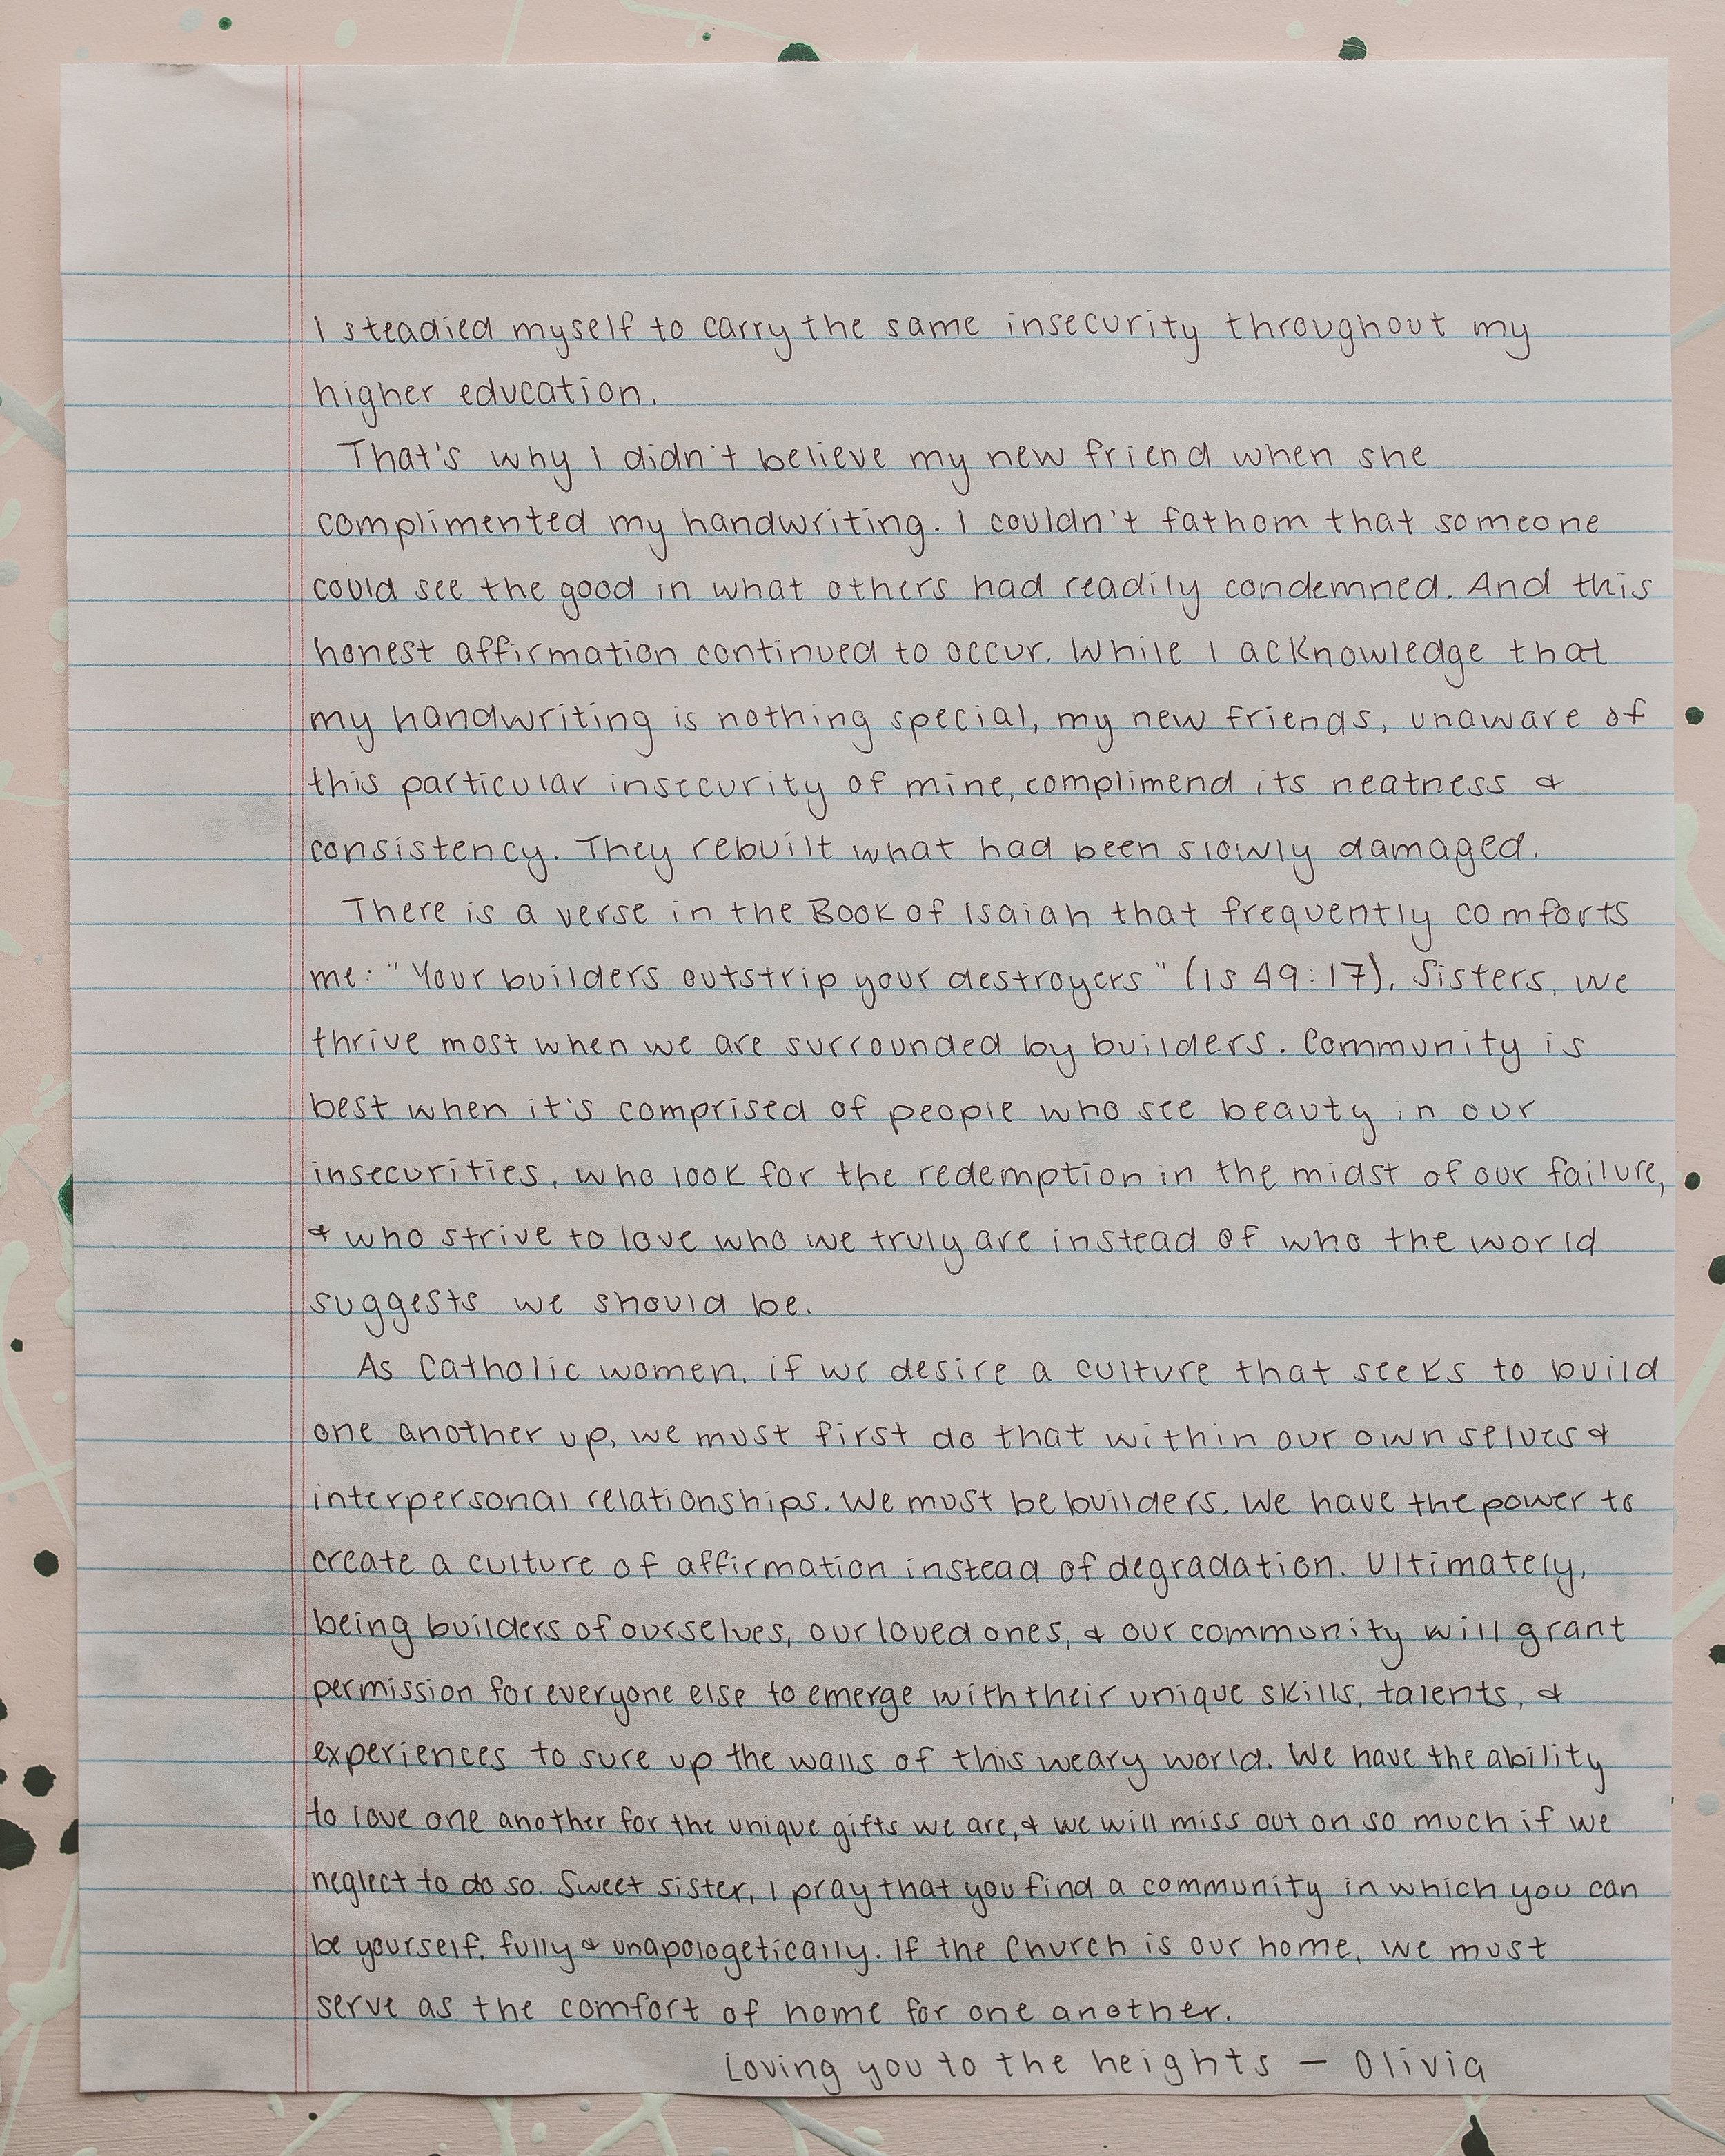 Olivia Spears Letter to Women 2